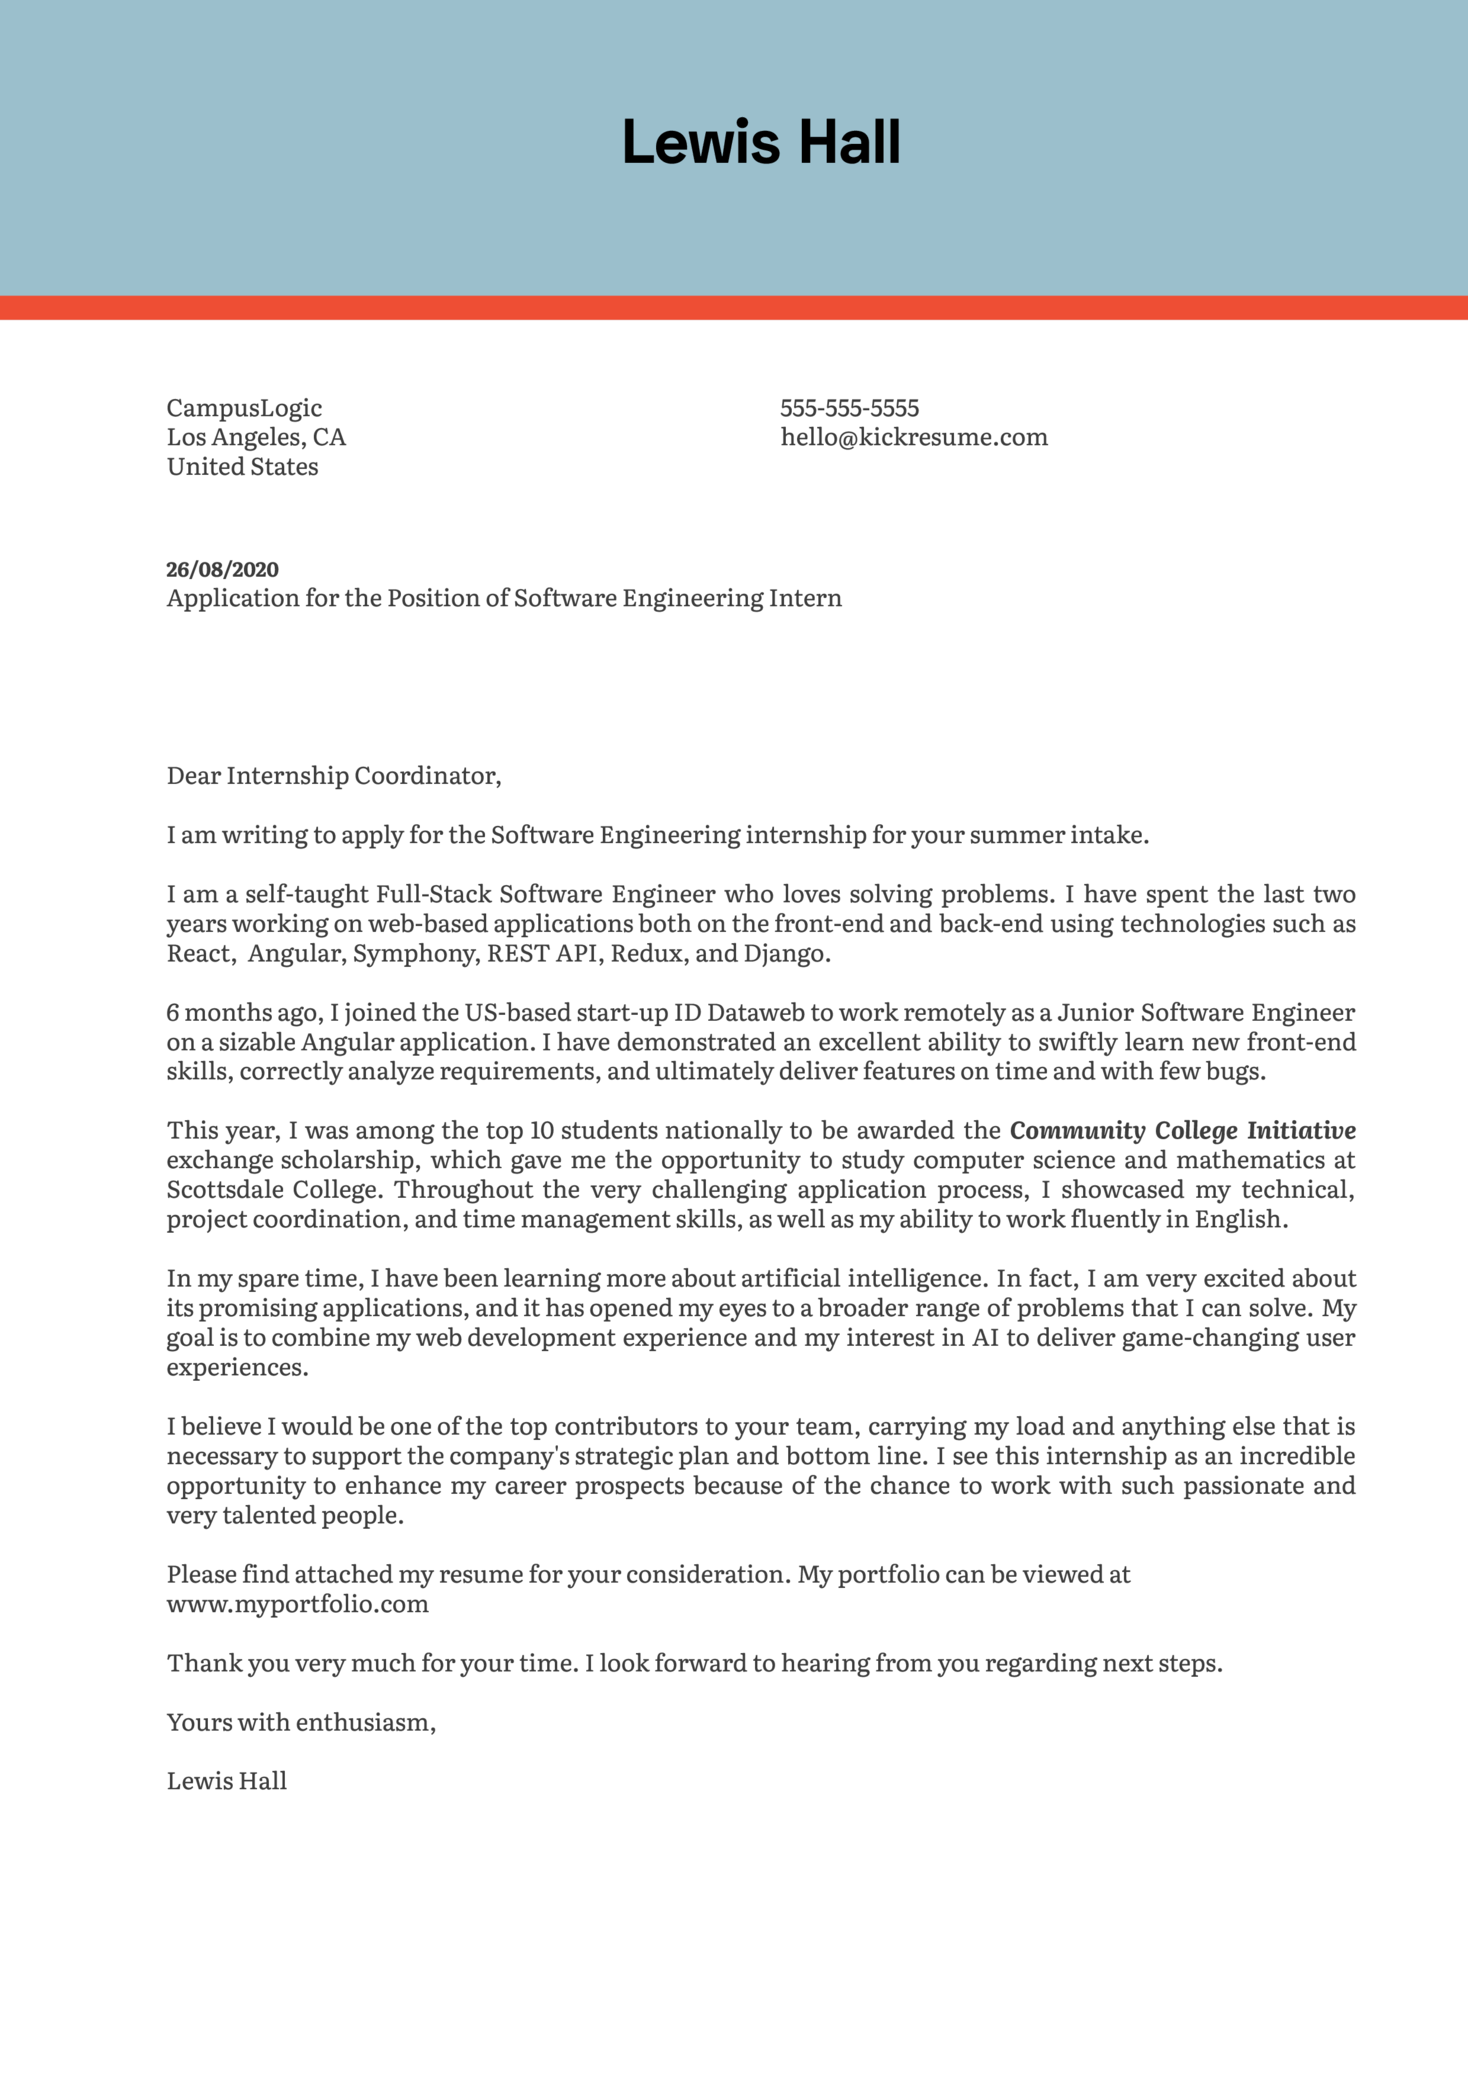 Software Engineering Intern Cover Letter Example